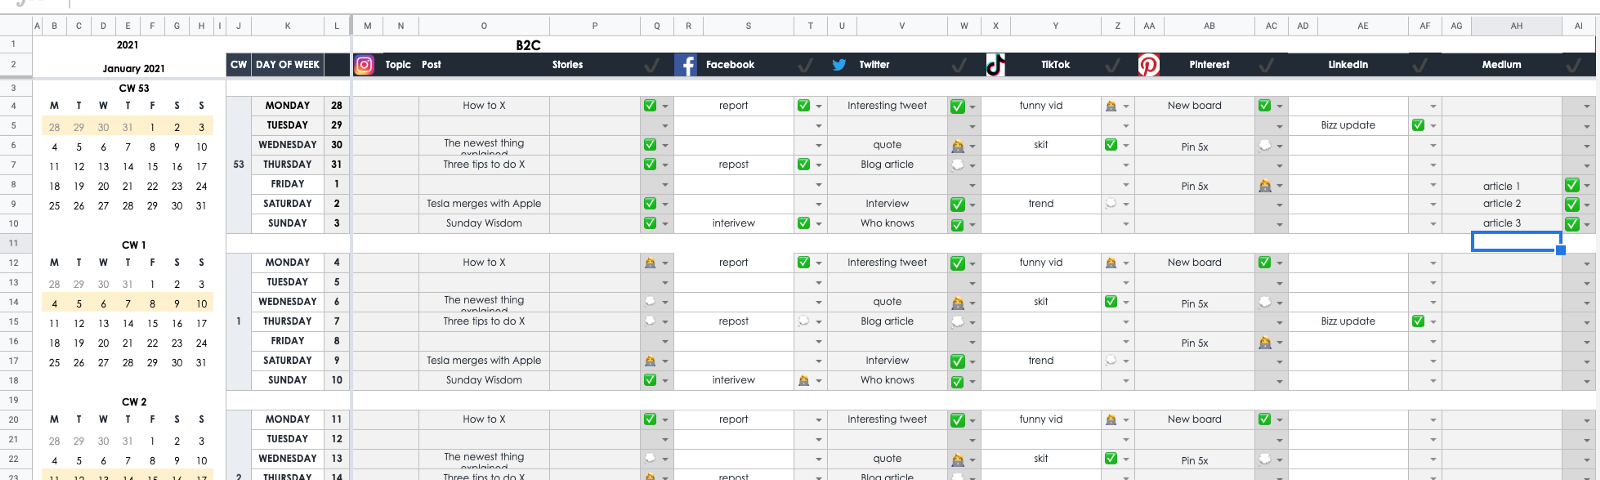 Screenshot of the template showing the Jan '21 tab with random dummy data.